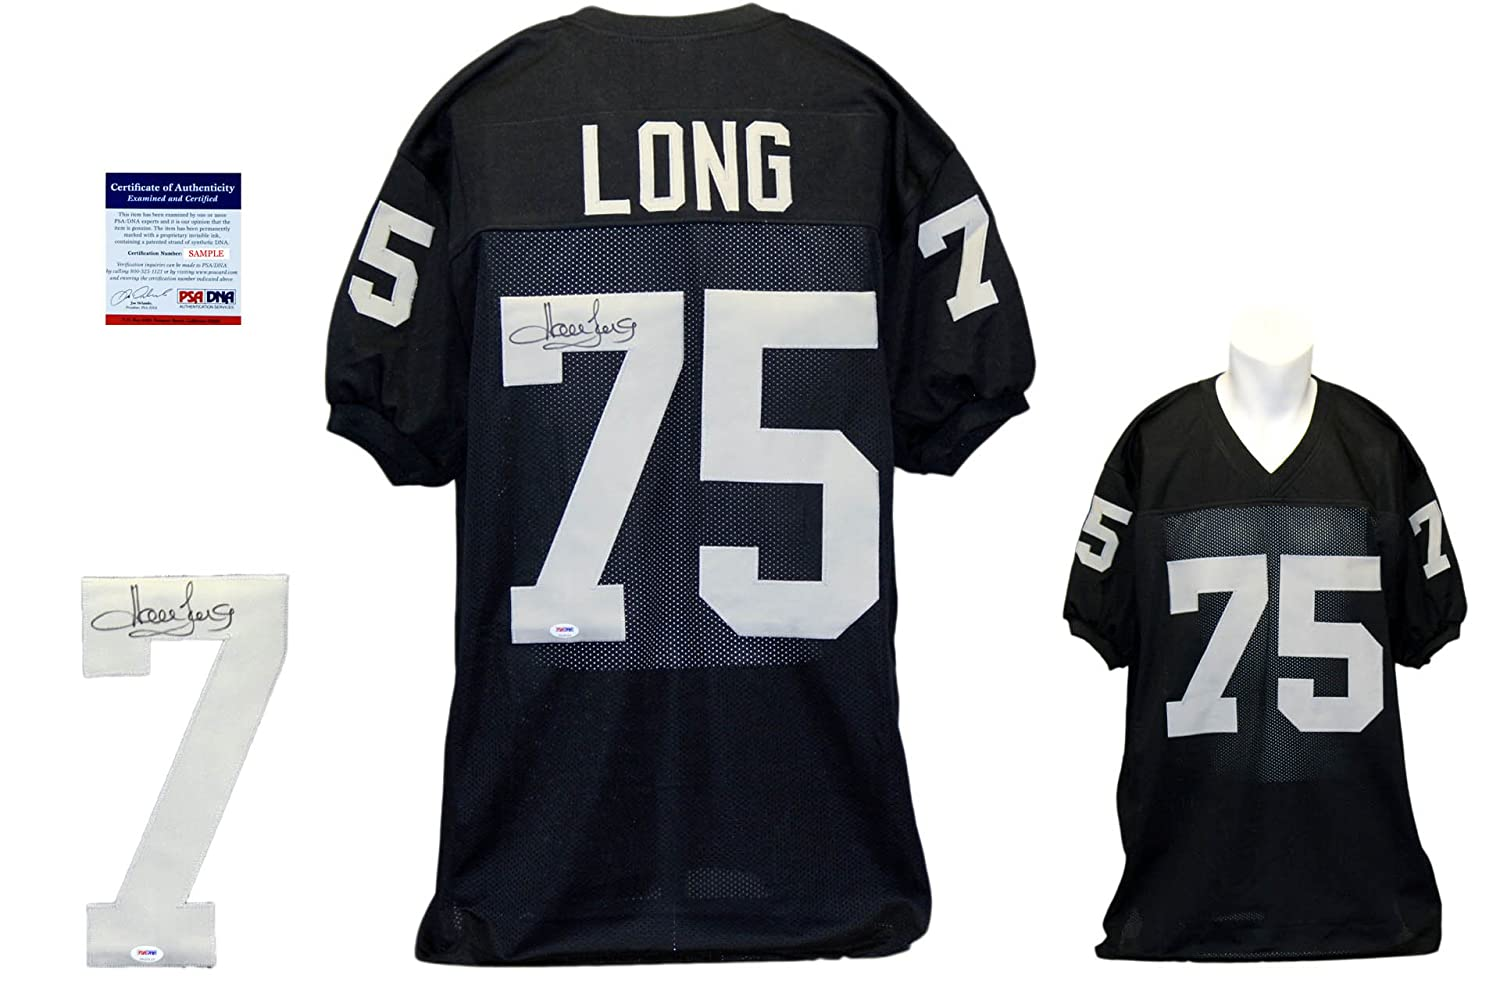 huge selection of 253ac dcabc Howie Long Signed Custom Jersey - PSA/DNA - Autographed - Black